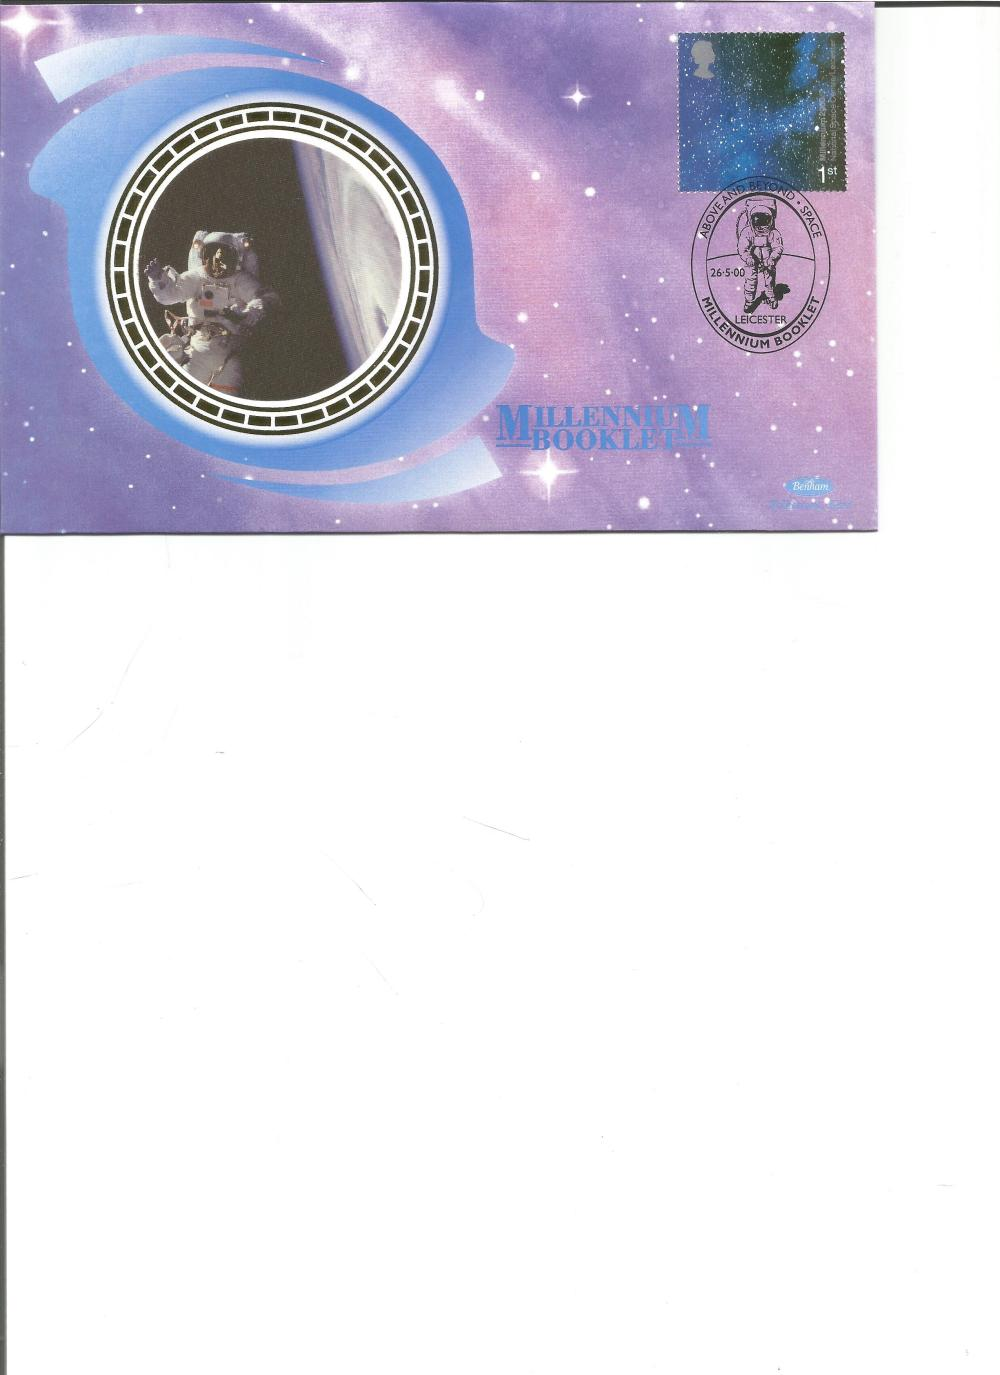 FDC Benham Millennium Booklet National Space Science Centre NVI BSSP46 PM Leicester 26. 5. 00. We